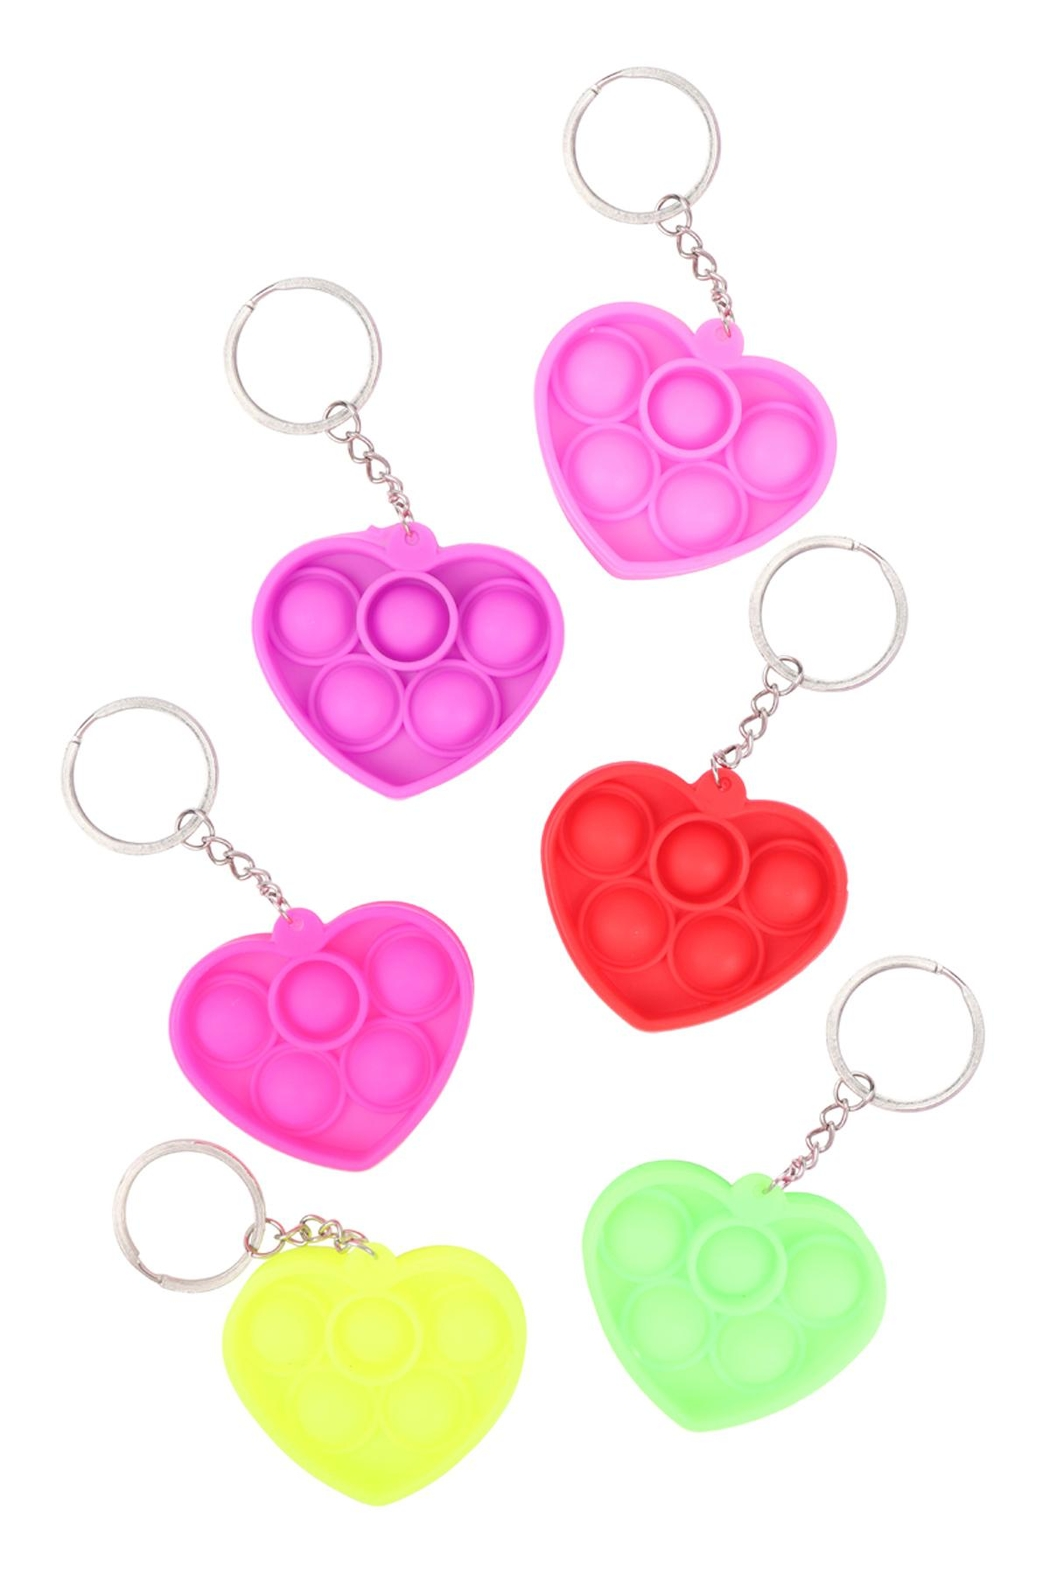 Riah Fashion Pop-Fidget-Sensory-And-Stress-Reliever-Heart-Multicolor-Toy-Keychain - Main Image